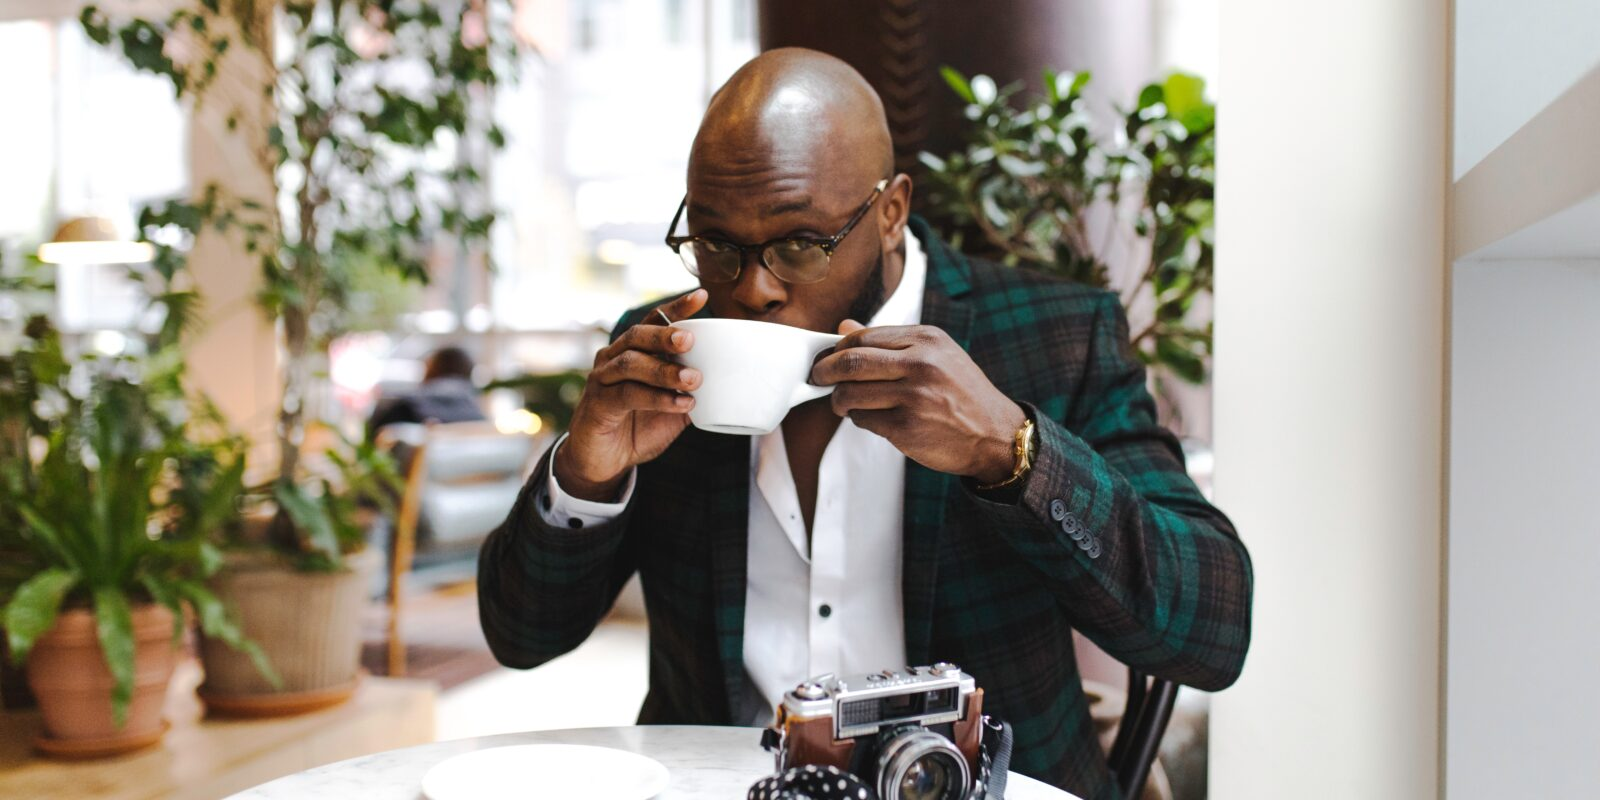 a bald guy in a suit drinking coffee in a coffeeshop with plants